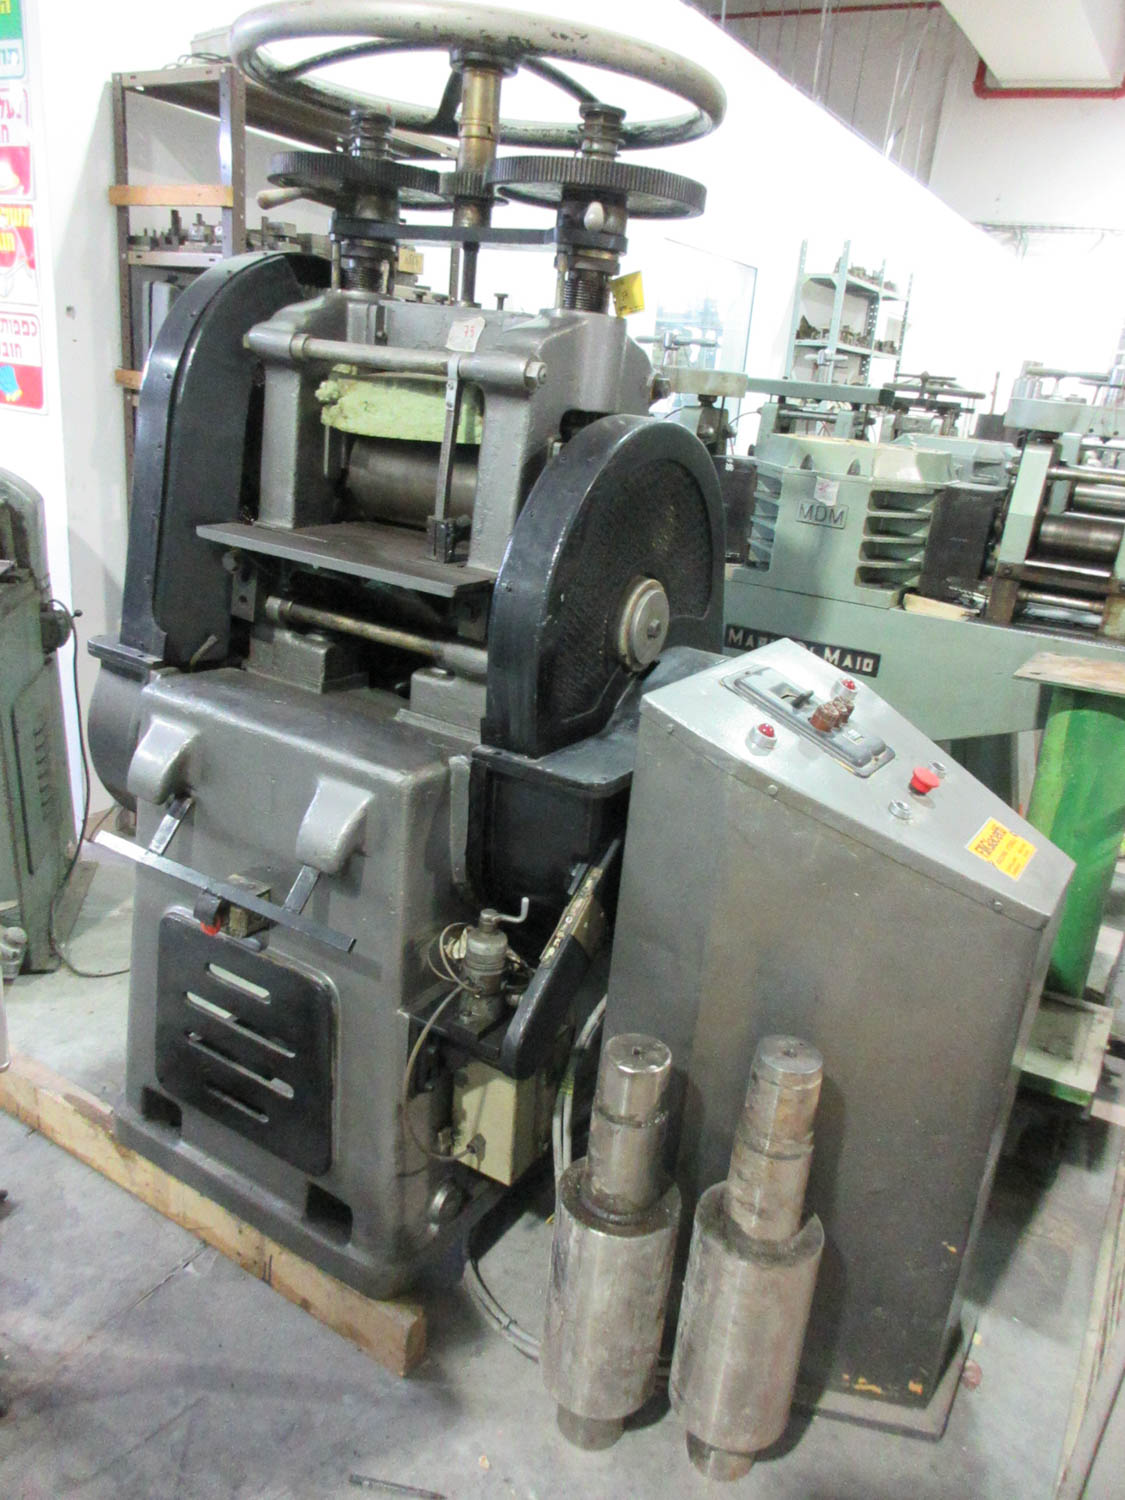 F. LLIGIACETTI MDL. LAMI 380 DOUBLE ROLLING MILL; TWIN SCREW; HAND-OPERATED; 380V; 50HZ; 3 PH, 29 CM